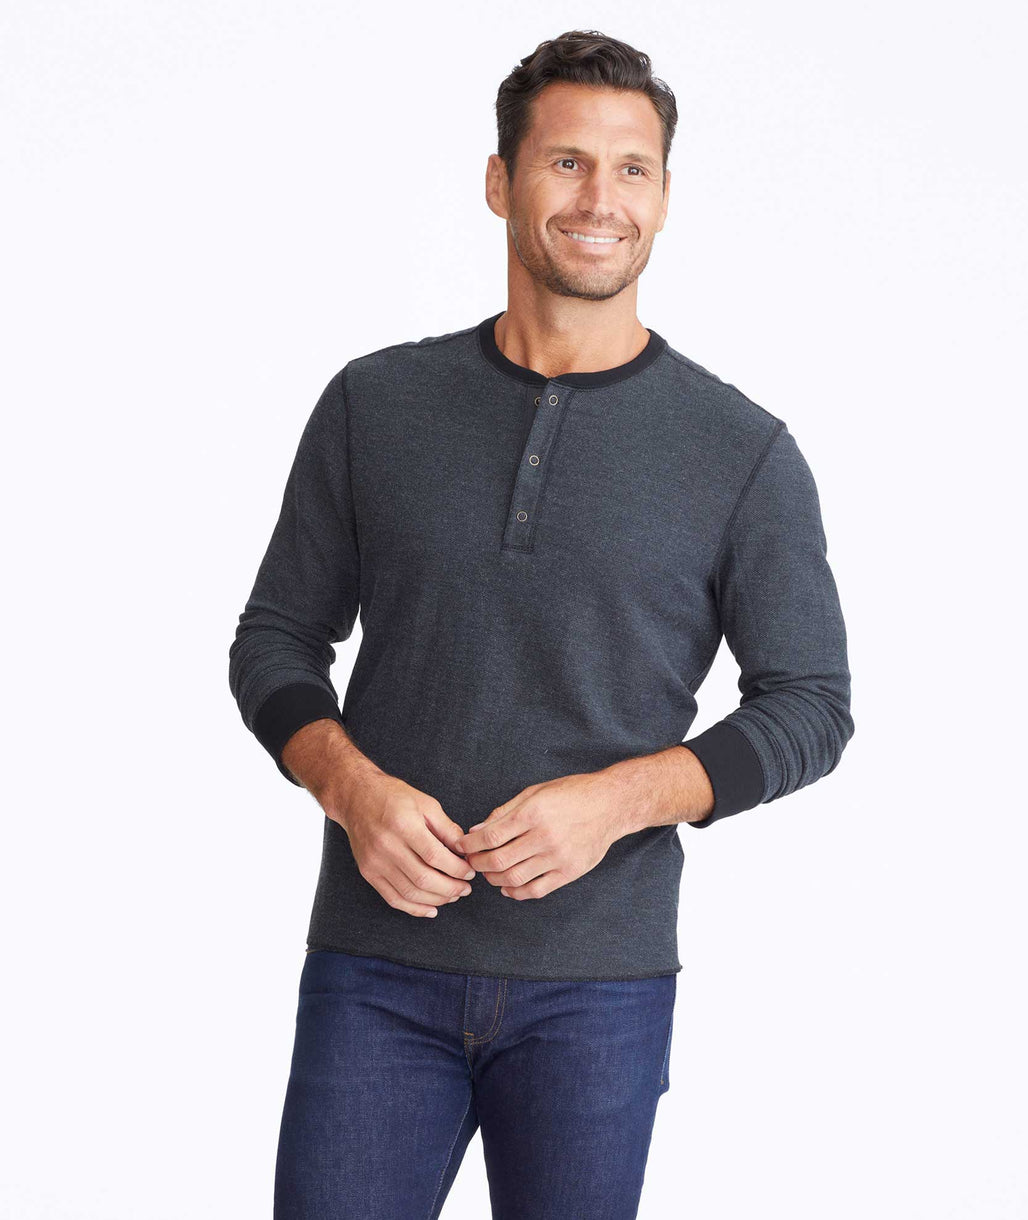 Model wearing a Black Textured Long-Sleeve Henley